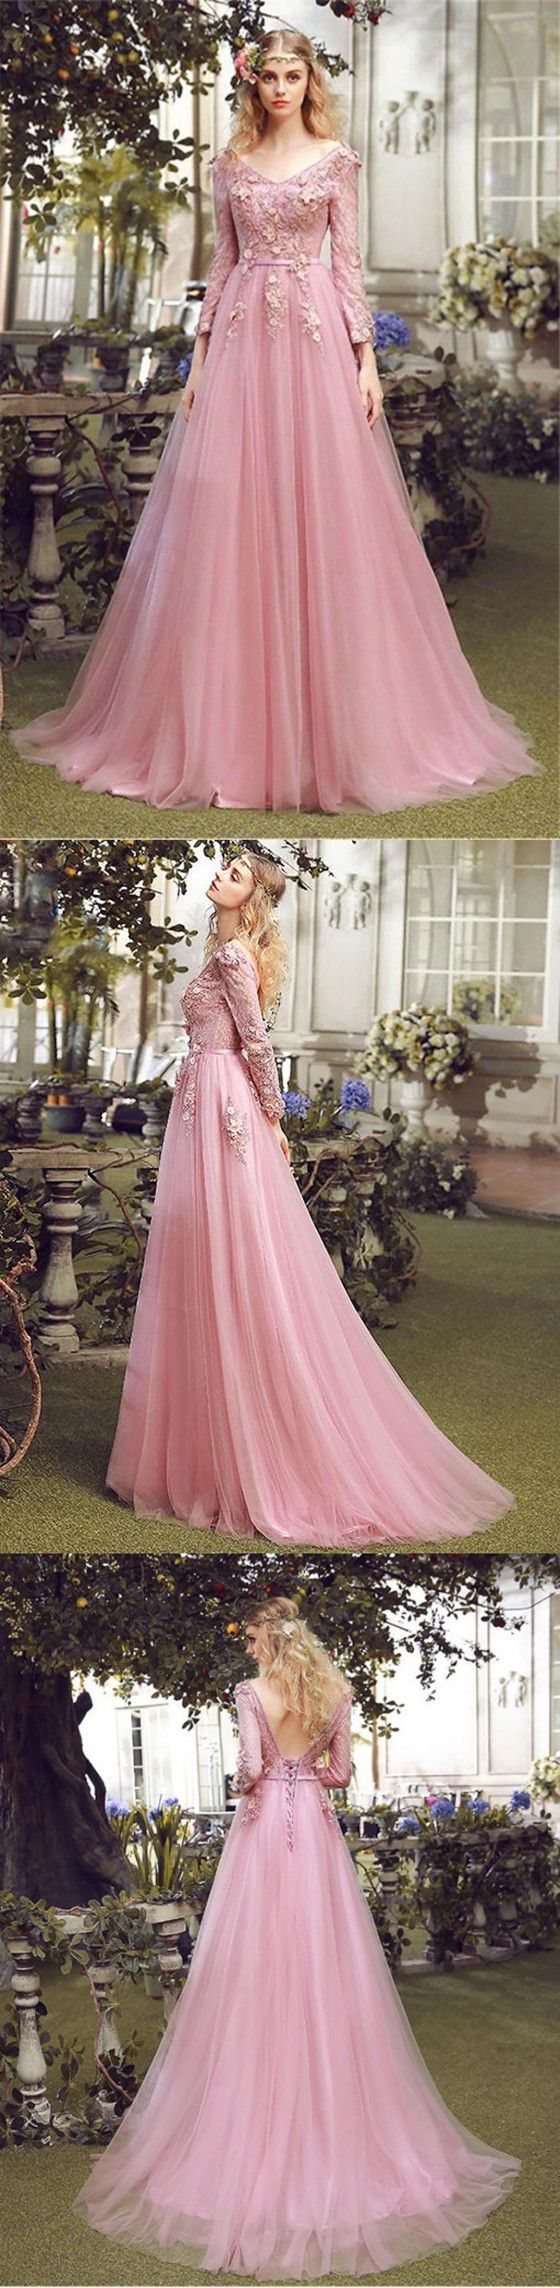 Floor-length A-line V-neck long sleeve evening dress, Pink lace ...